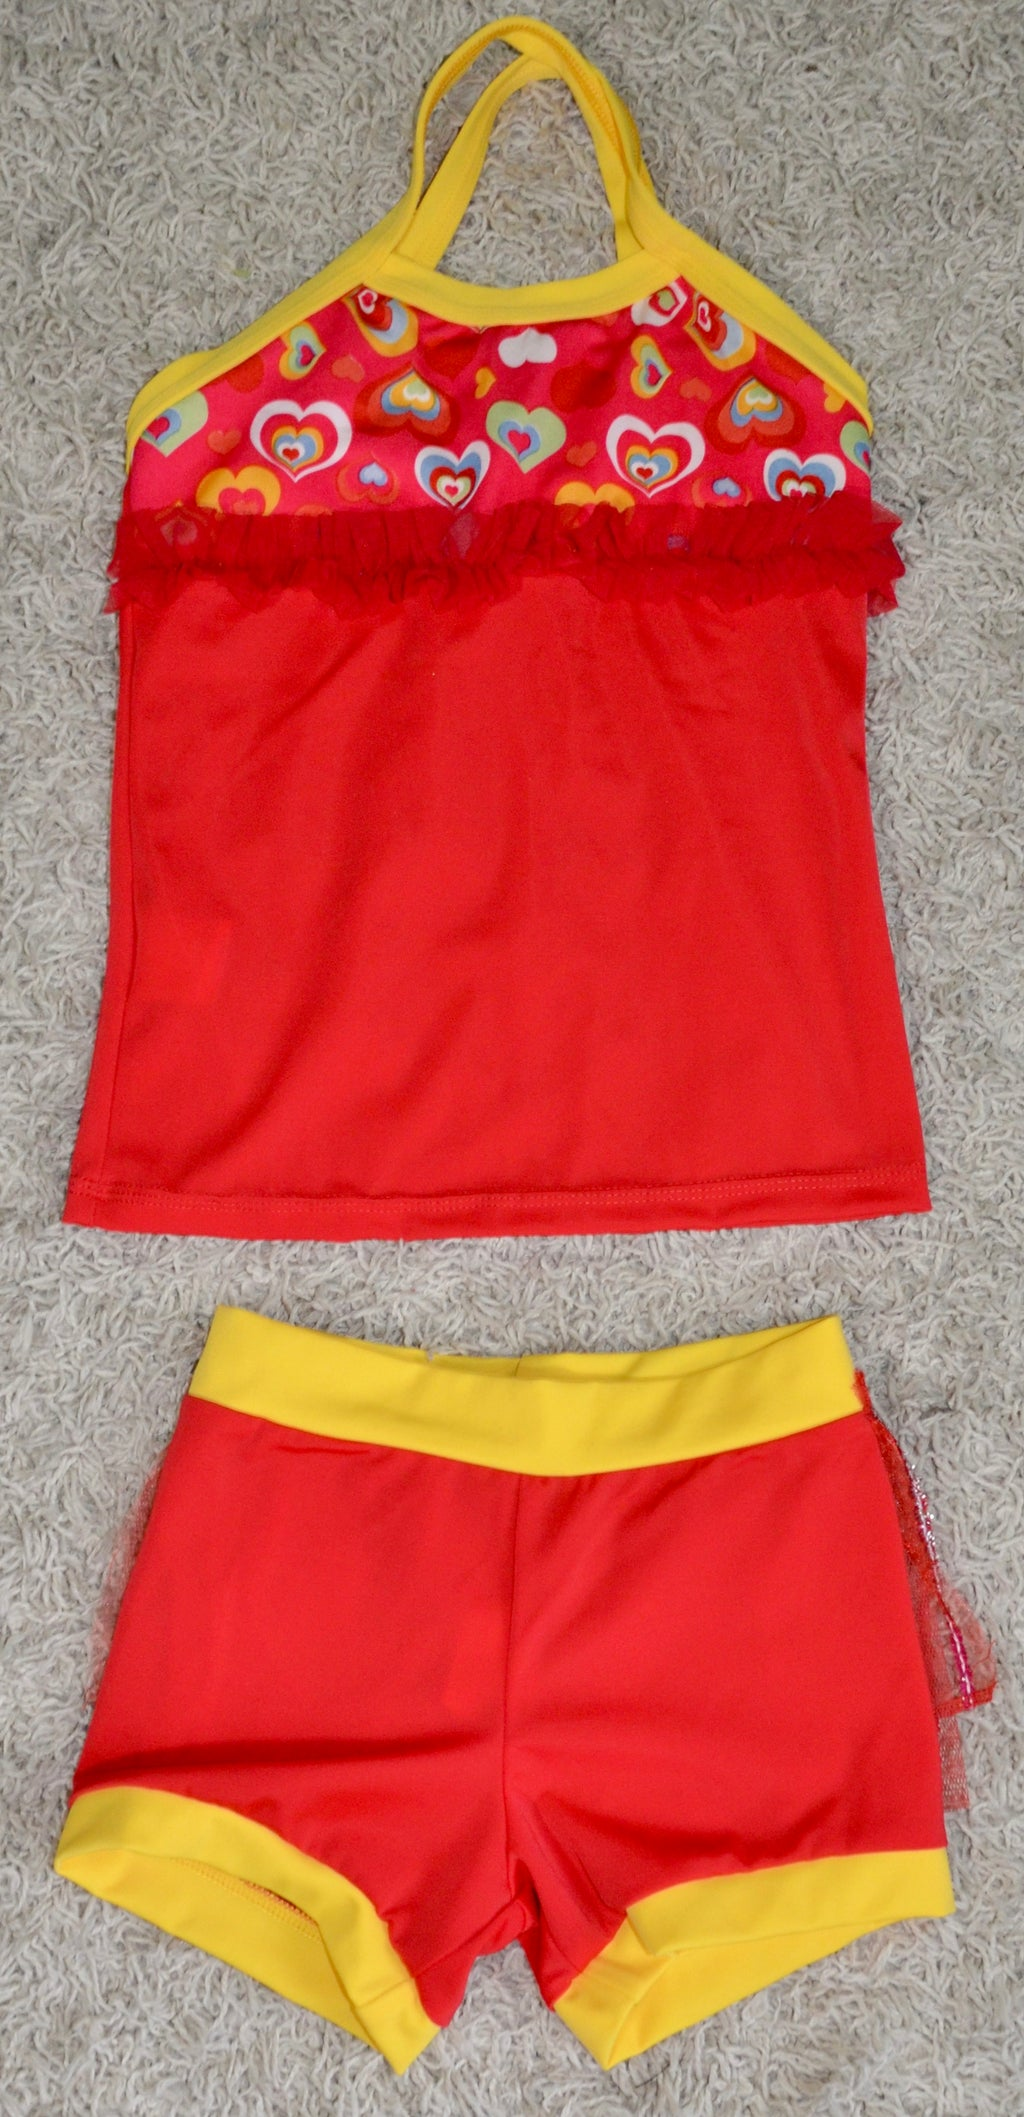 RED & YELLOW/ HEARTS DANCE SET